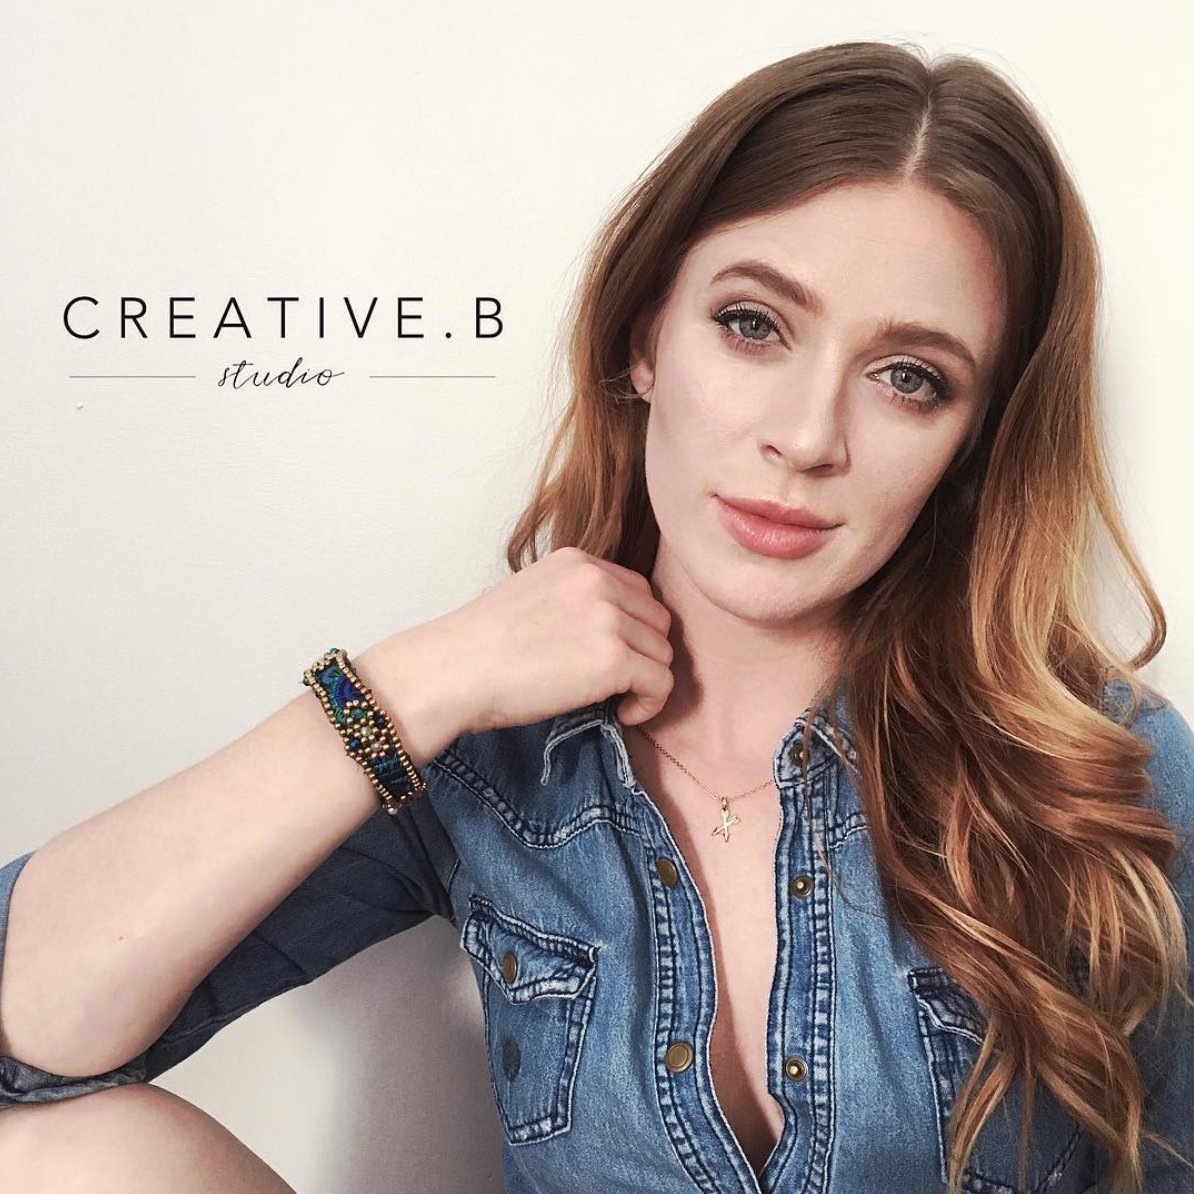 @creativeb_studio